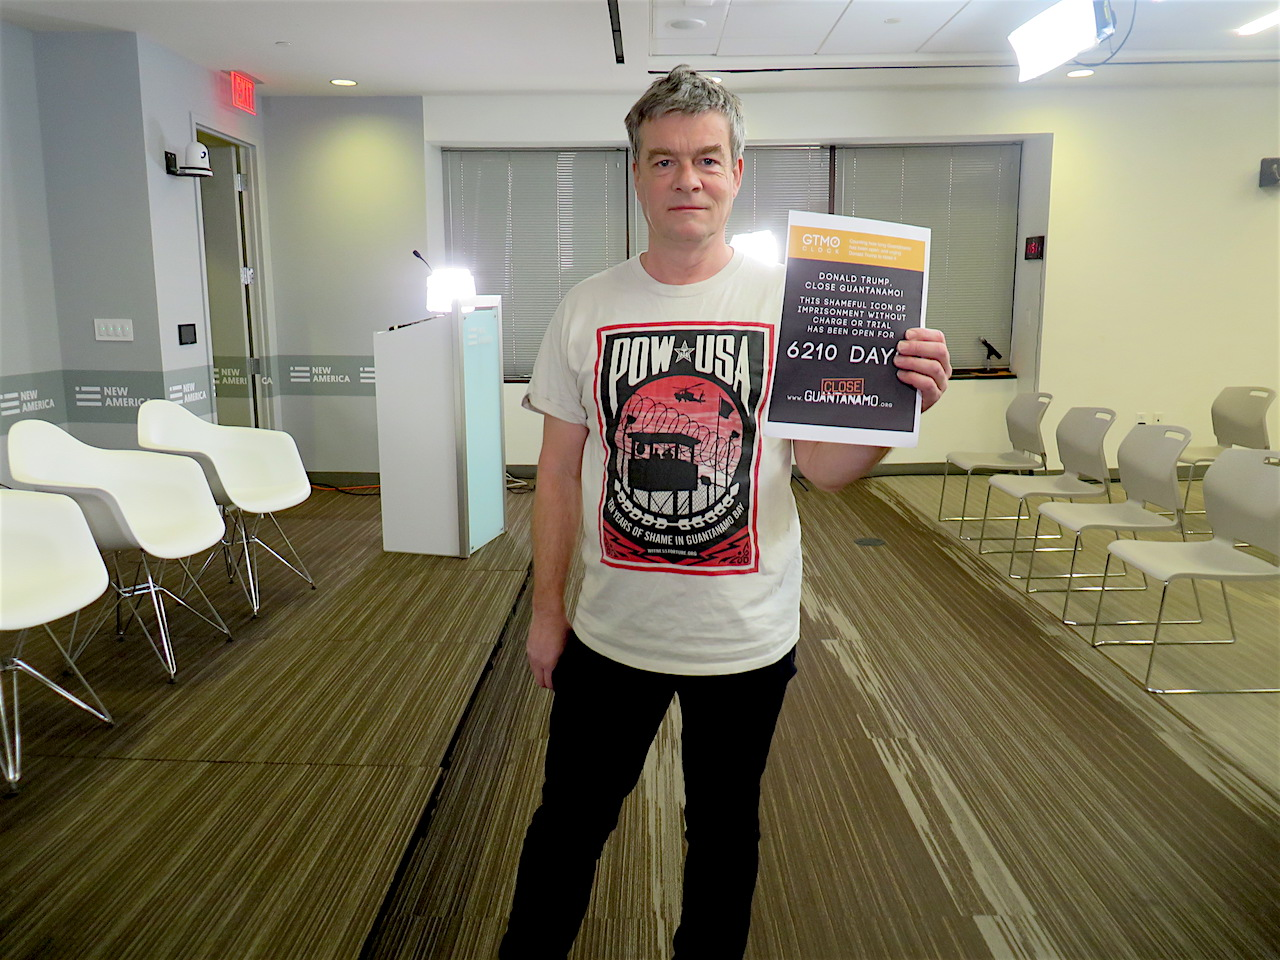 Andy Worthington with a Close Guantanamo poster marking 6,210 days of the prison's existence at New America in Washington, D.C. on January 11, 2019, the 17th anniversary of the prison's opening.